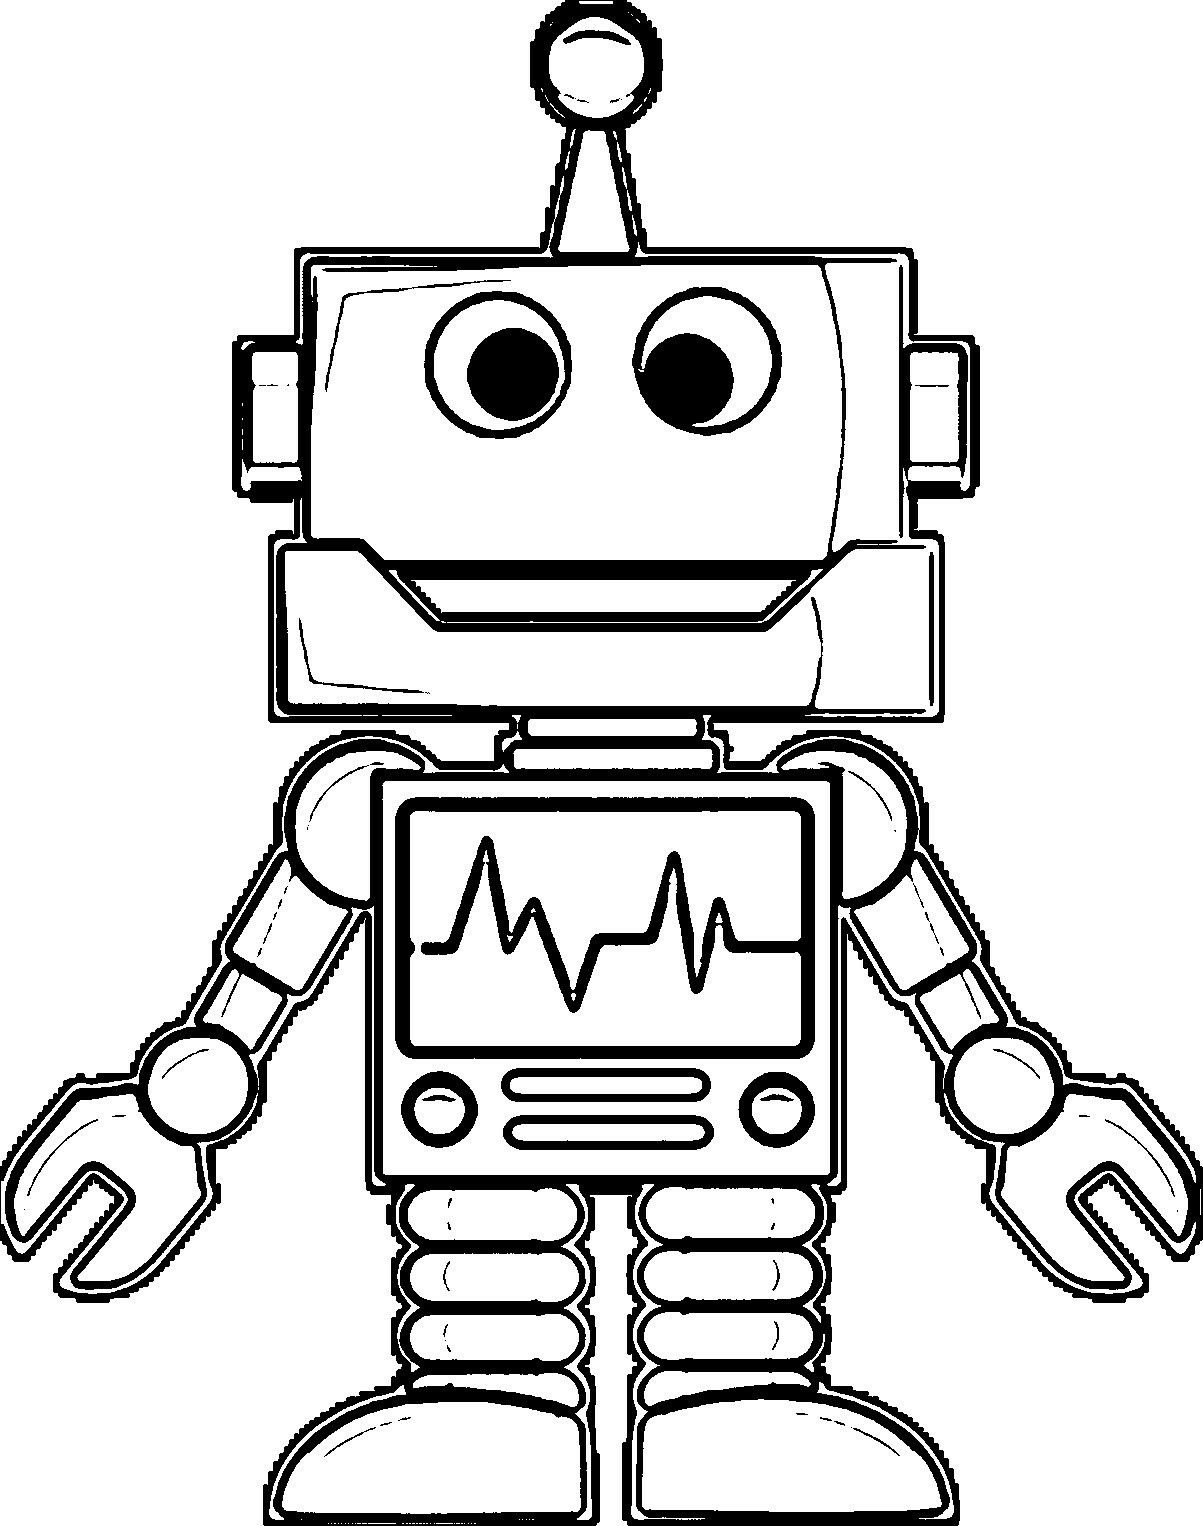 Pin by Kelsey Huber on Coloring Pages   Robots drawing ...